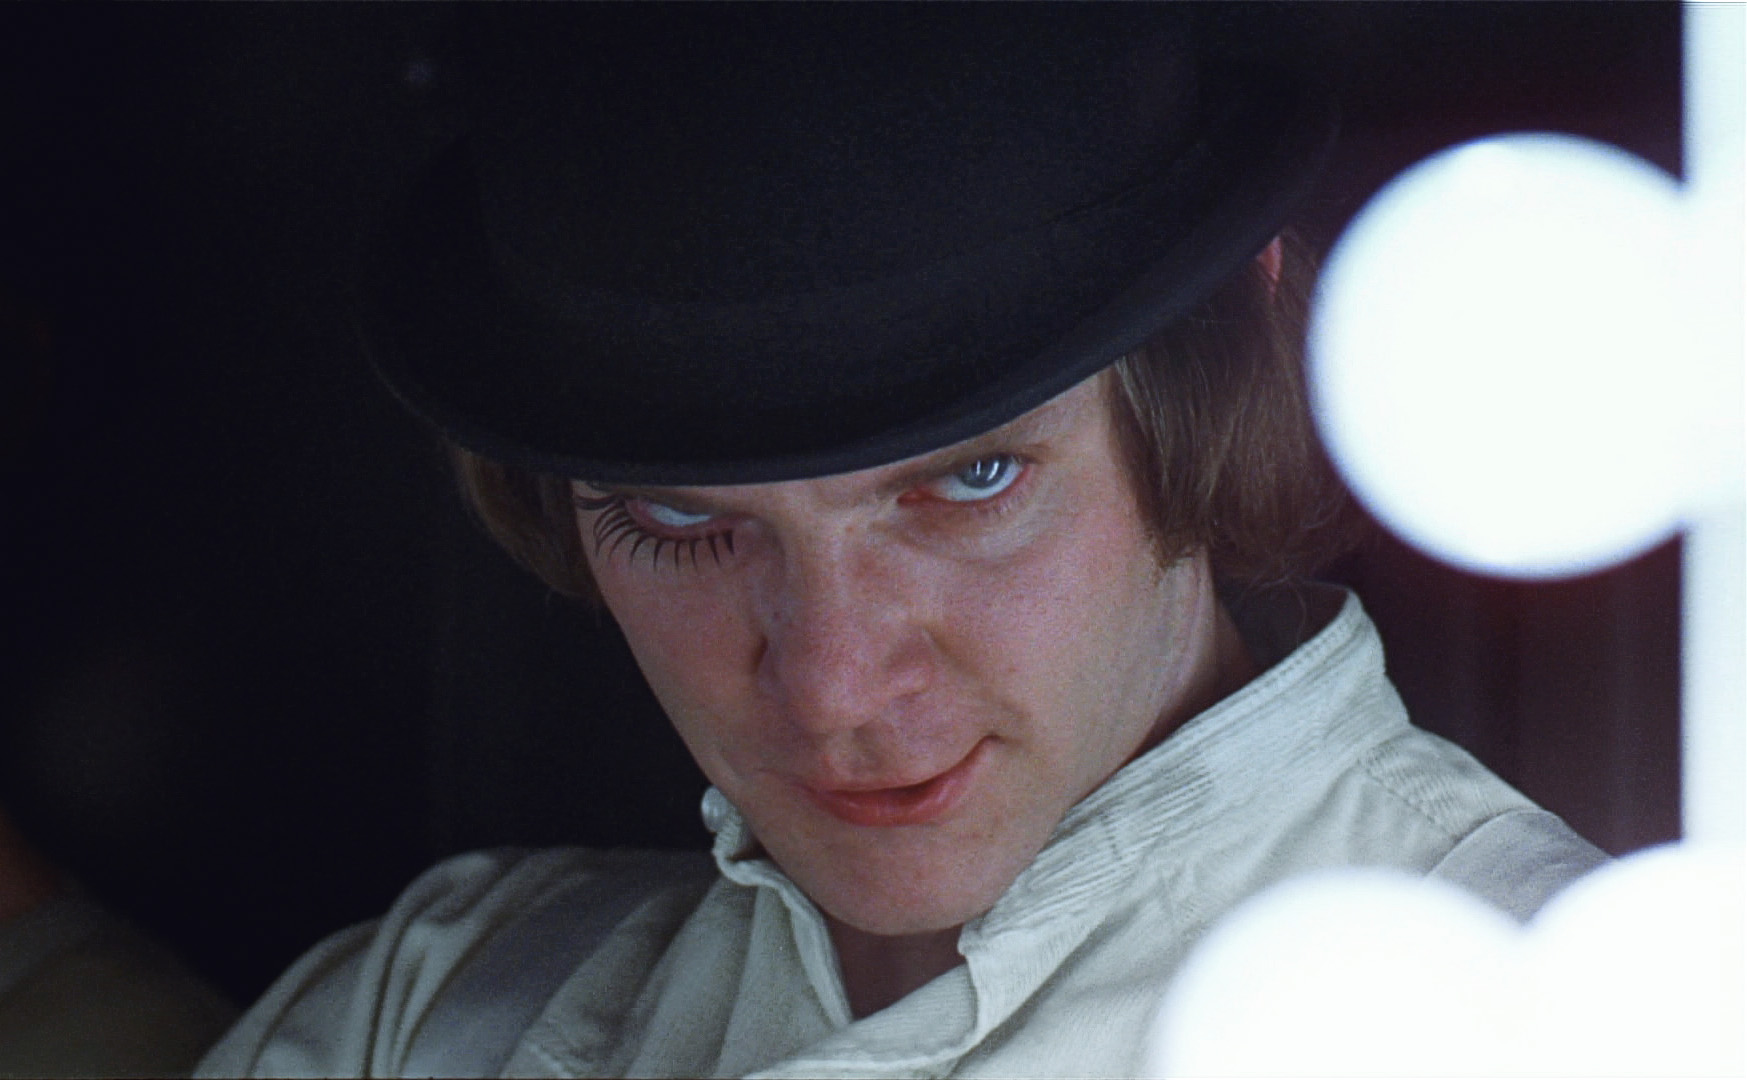 an analysis of the film a clockwork orange An allegorical analysis of a clockwork orange the movie that cracked kubrick's monolith code - being there (1979) film analysis - duration: 5:20 rob ager 100,853 views.